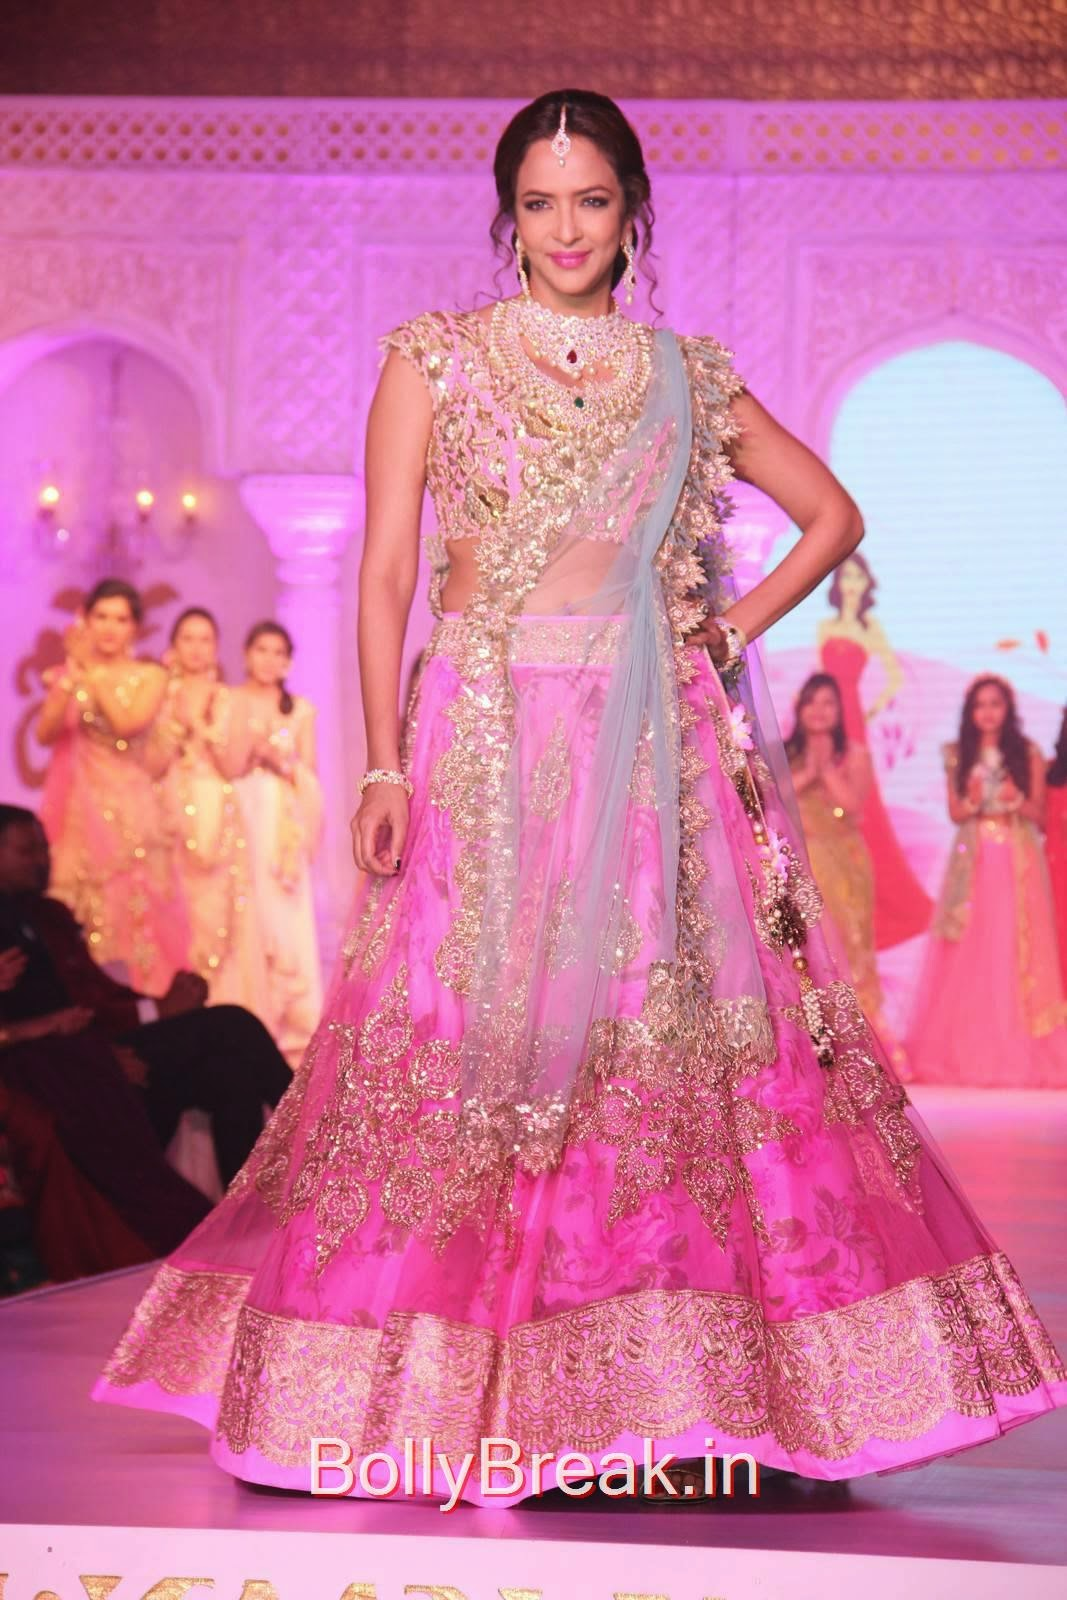 Tollywood Actress Manchu Lakshmi, Manchu Lakshmi Pics in Bridal Lehenga Choli